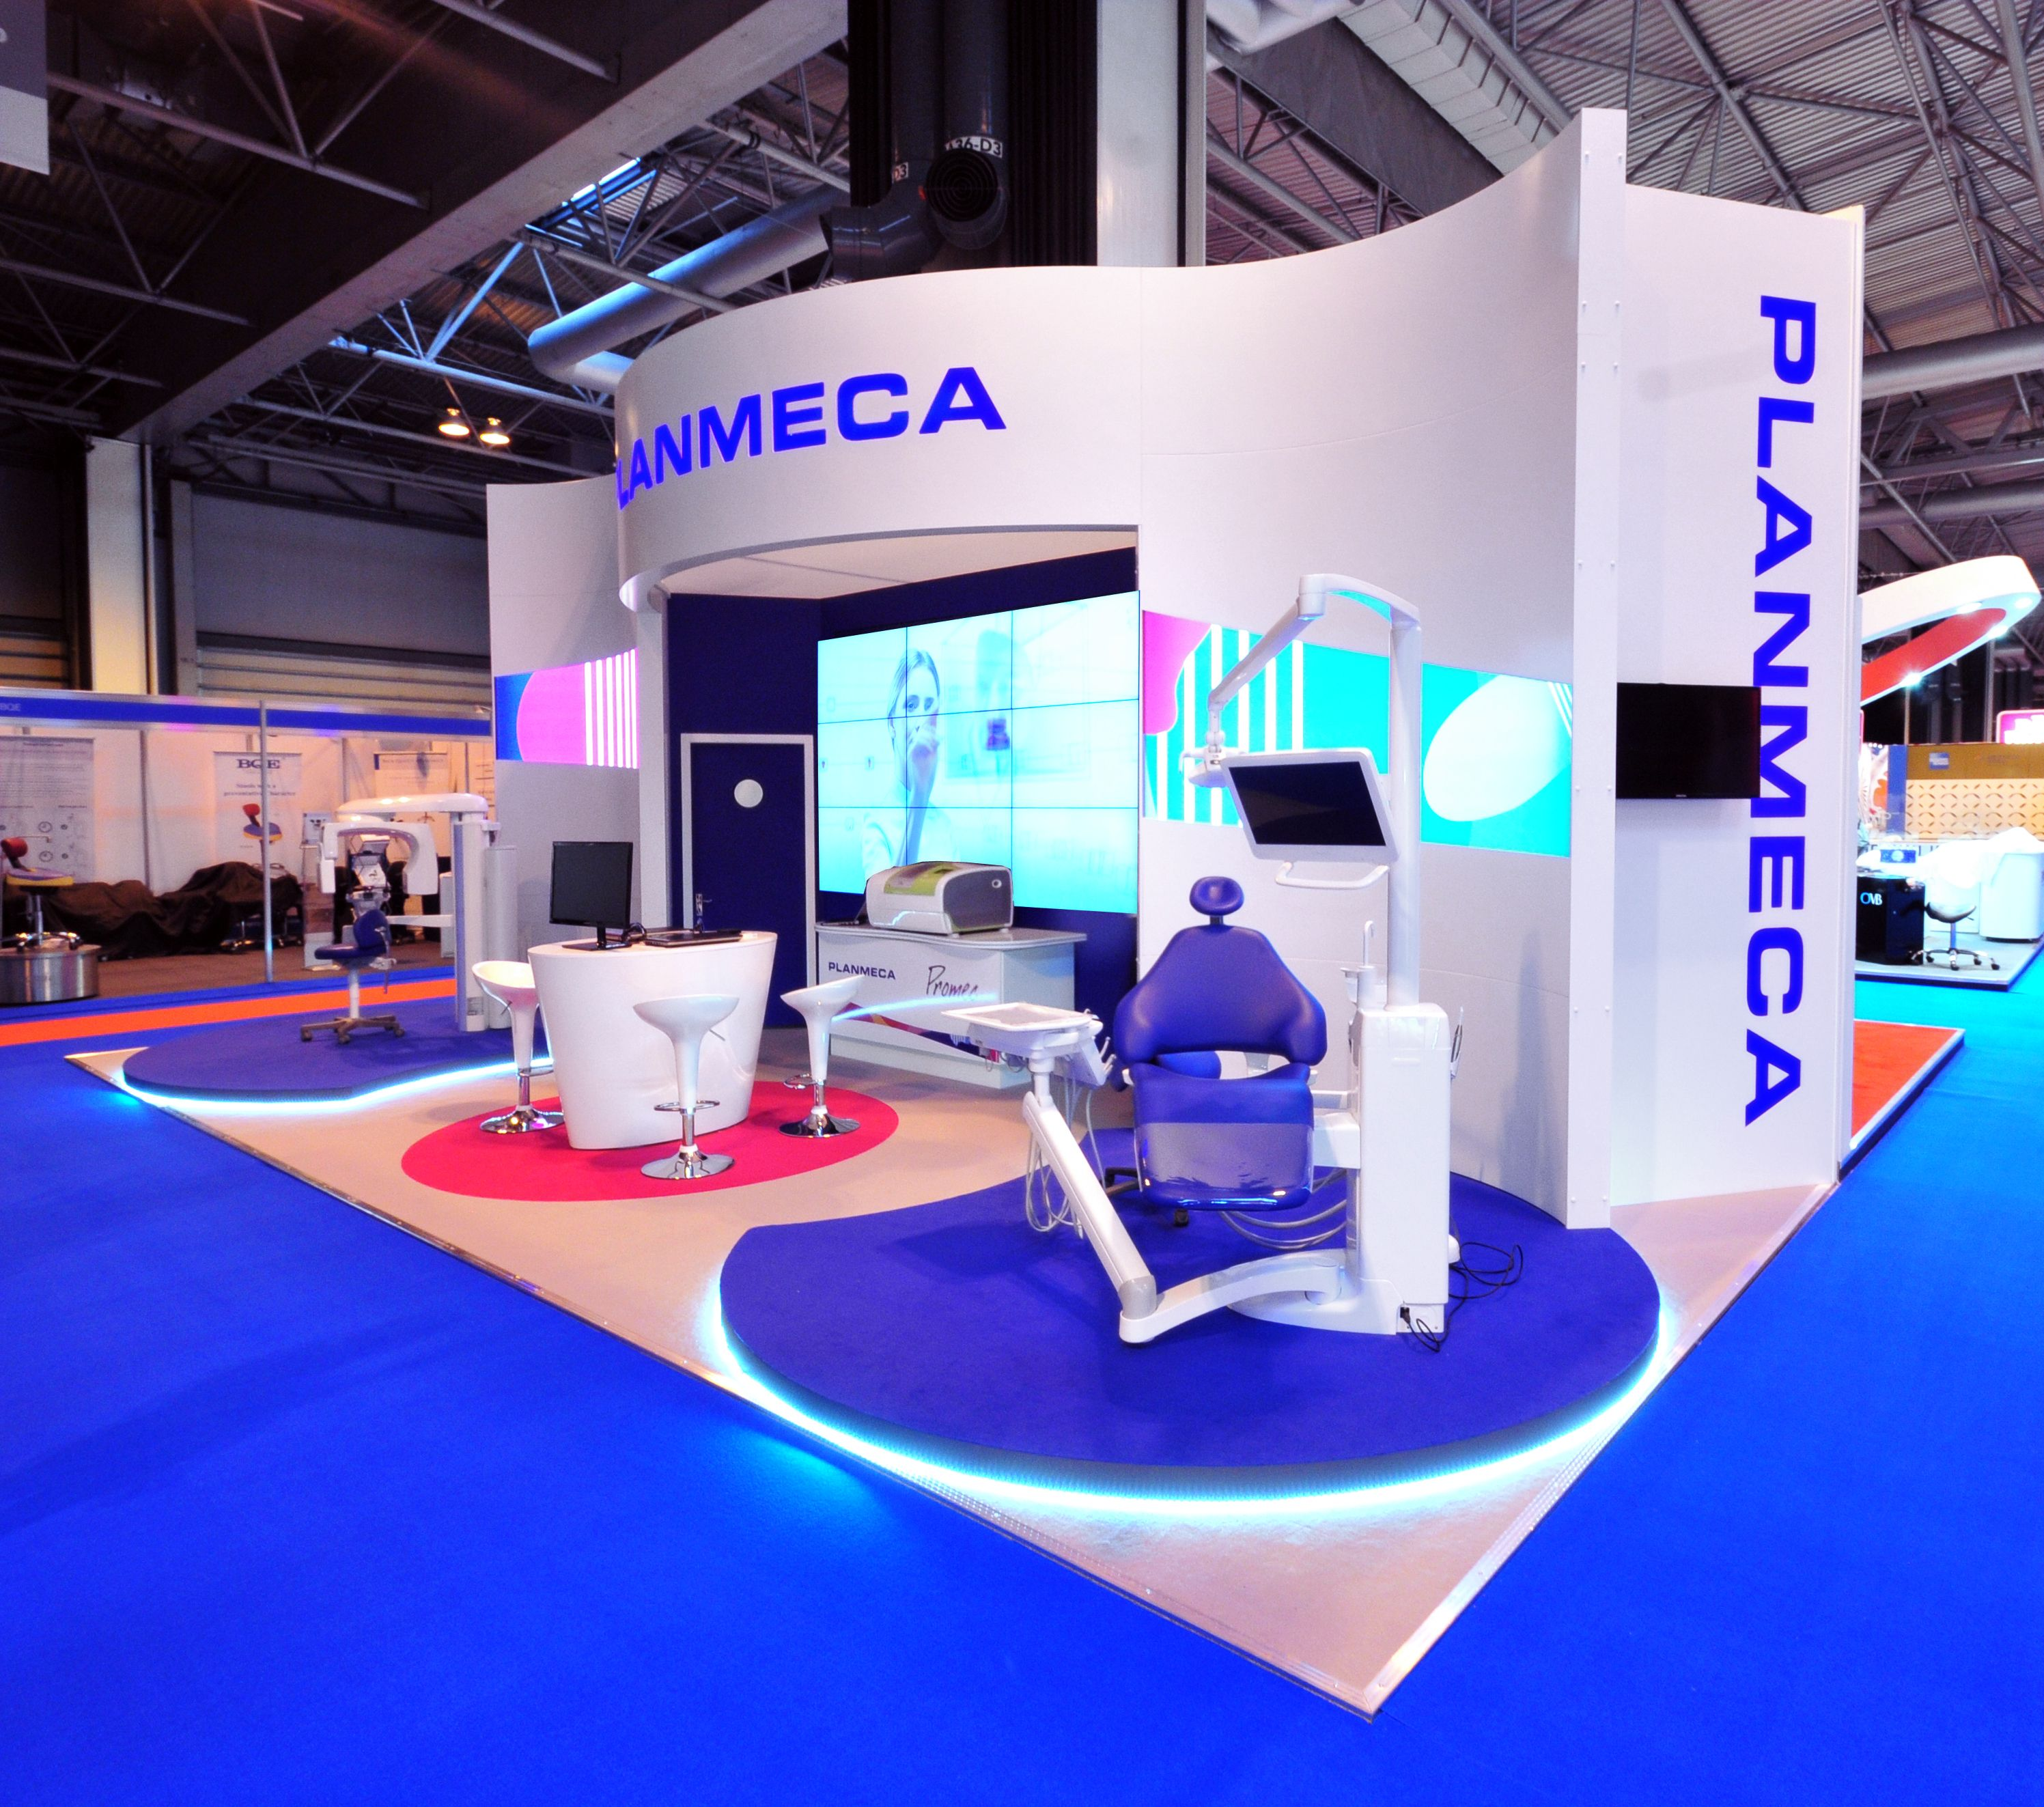 Exhibition Stall Reference : Planmeca dentistry show nec exhibition stalls